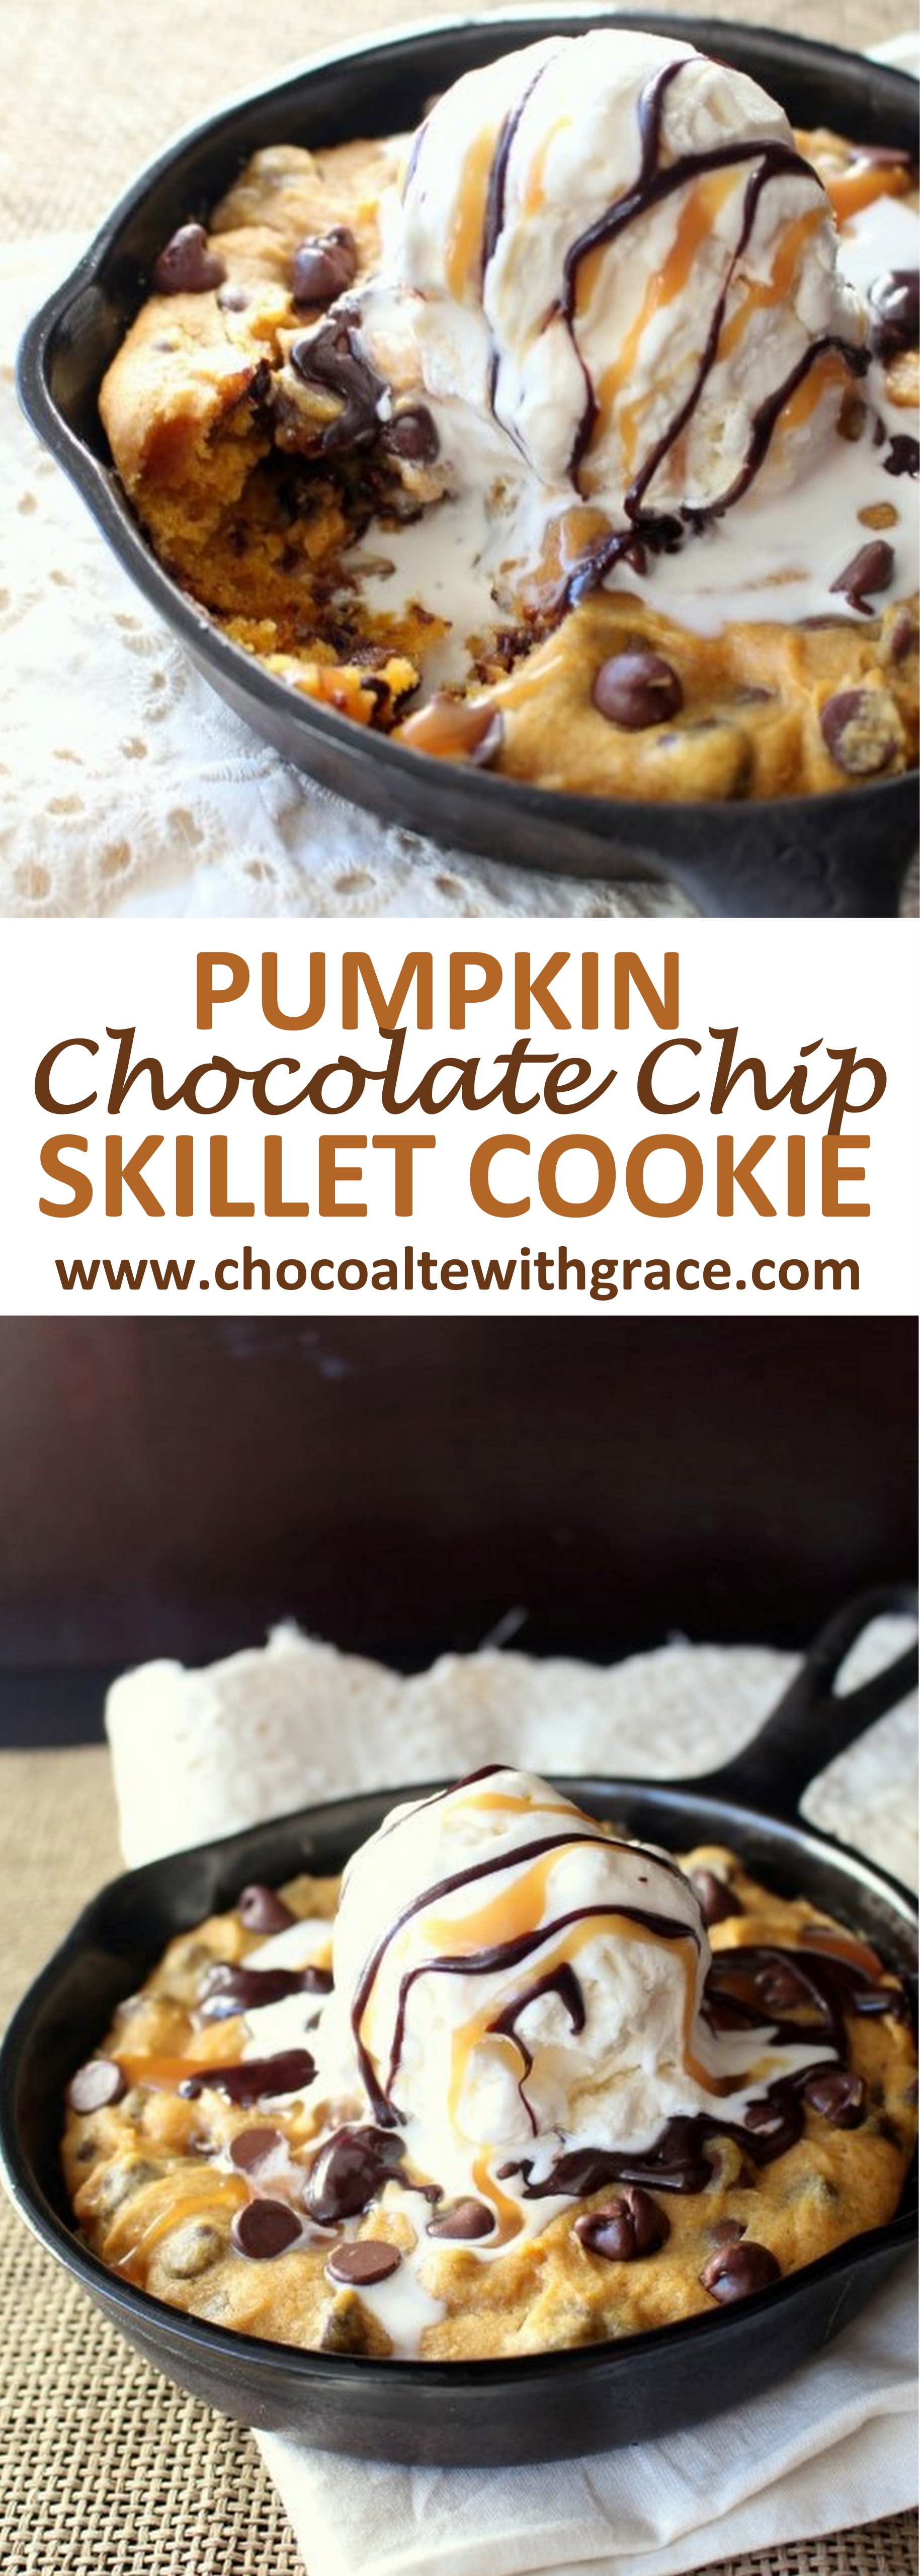 Pumpkin Chocolate Chip Skillet Cookie - Chocolate with Grace